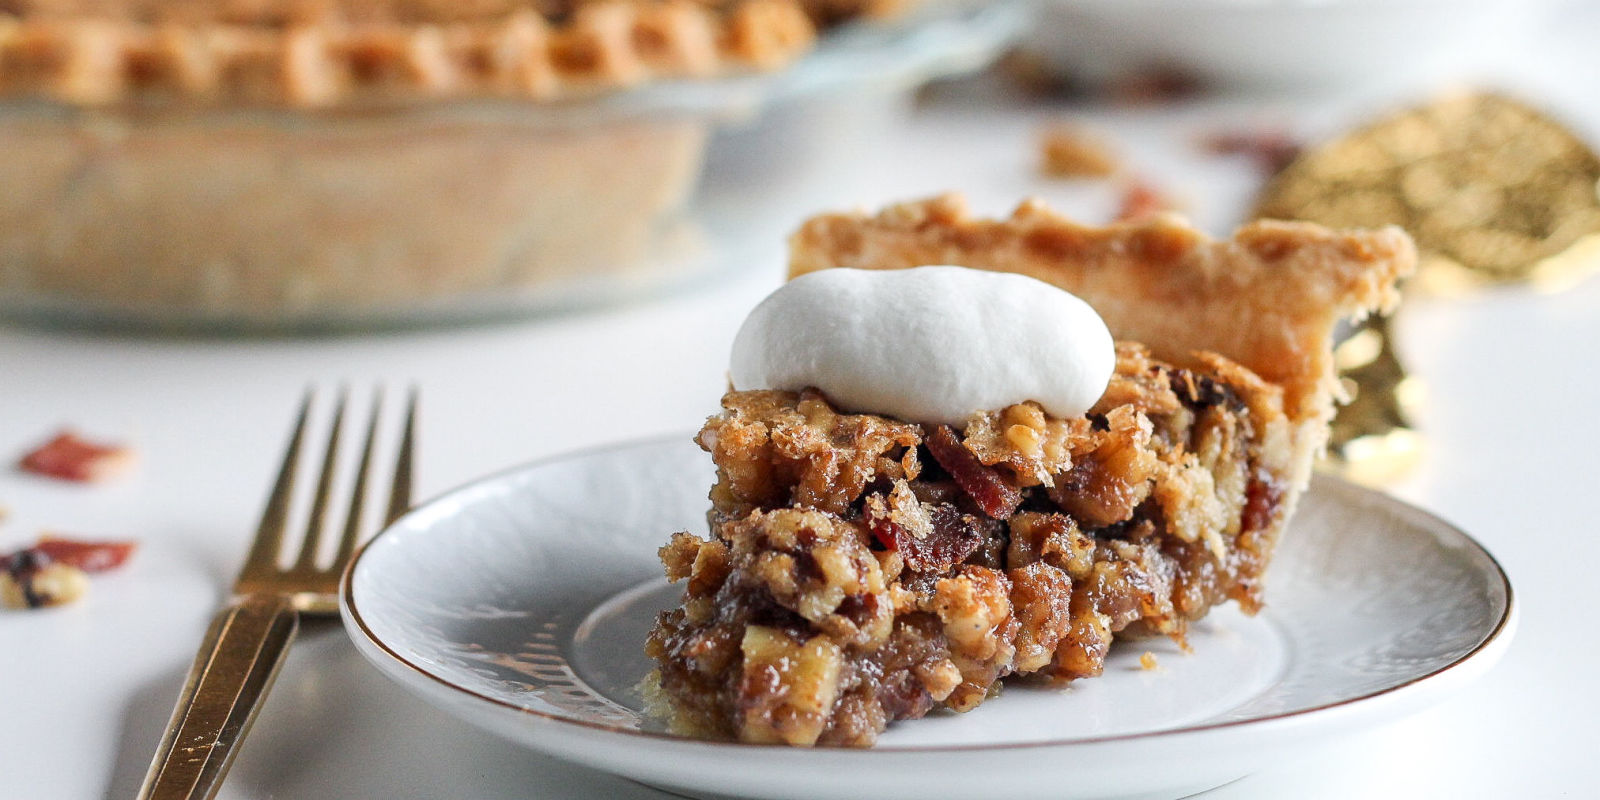 Maple Bacon Walnut Pie Recipe-How to Make Maple Bacon Walnut Pie